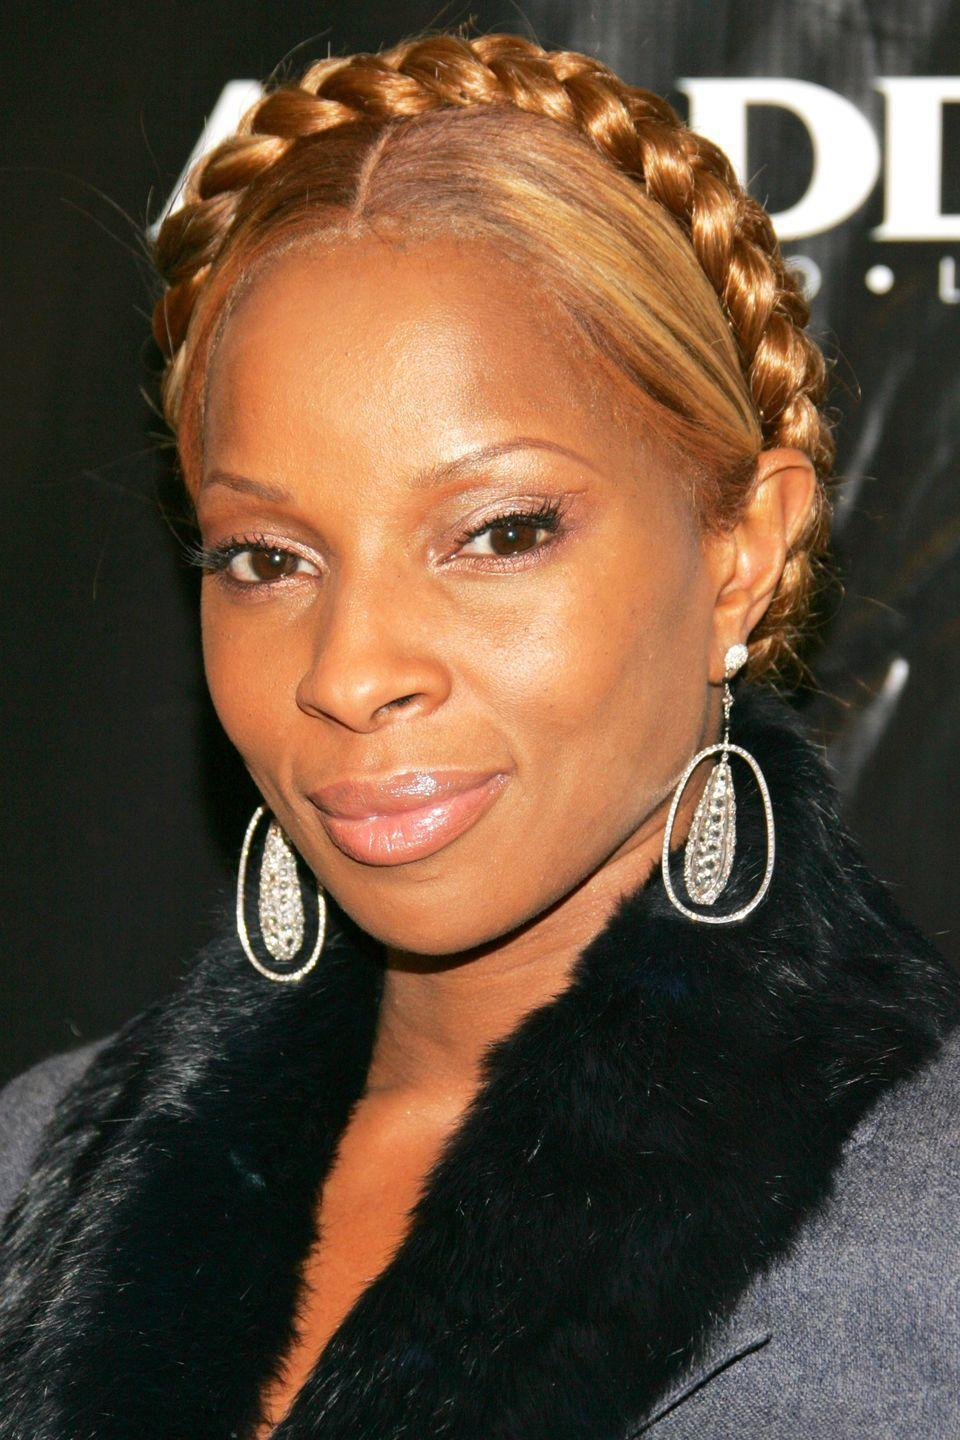 """<p>""""This Goddess braid is the exact same one I am wearing on the cover of my '<a href=""""https://www.amazon.com/Breakthrough-Mary-J-Blige/dp/B000BNTM32"""" rel=""""nofollow noopener"""" target=""""_blank"""" data-ylk=""""slk:Breakthrough"""" class=""""link rapid-noclick-resp"""">Breakthrough</a>' album. I wanted to be intentional at this point in my career. It's a very powerful, queen look for me―I'm in control of my life and my destiny. I was also doing more minimal makeup during this time because I wanted people to really see me.""""</p>"""